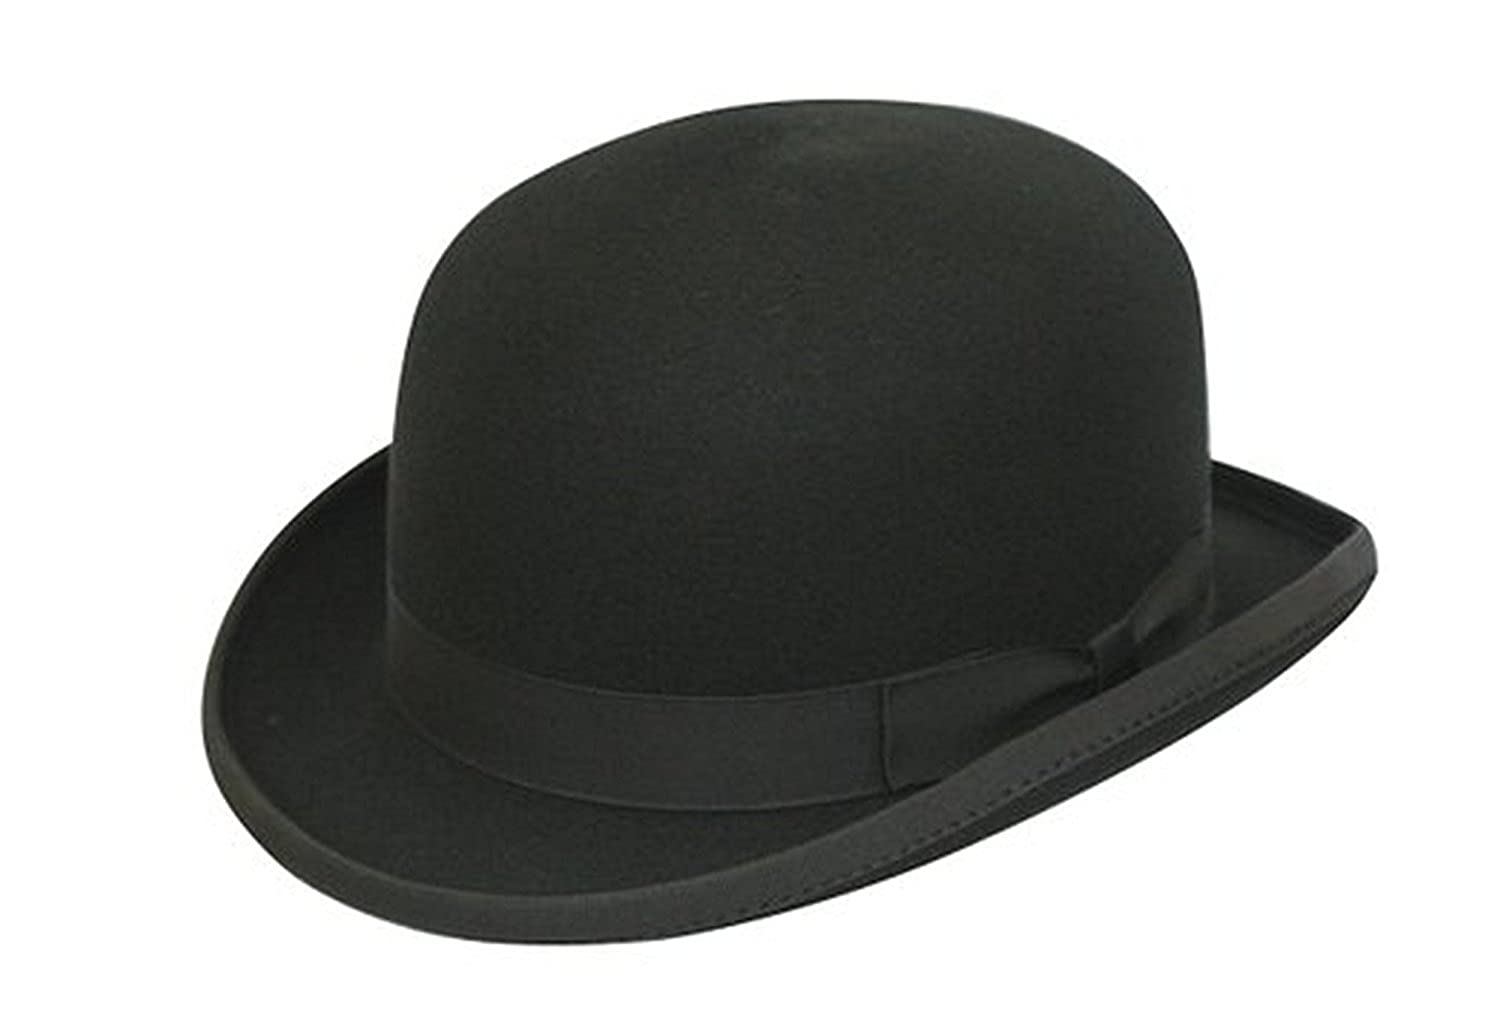 100% Wool Plain Black Classic Round Top Hard Bowler Hat - Hand Made - With Cleaning Brush